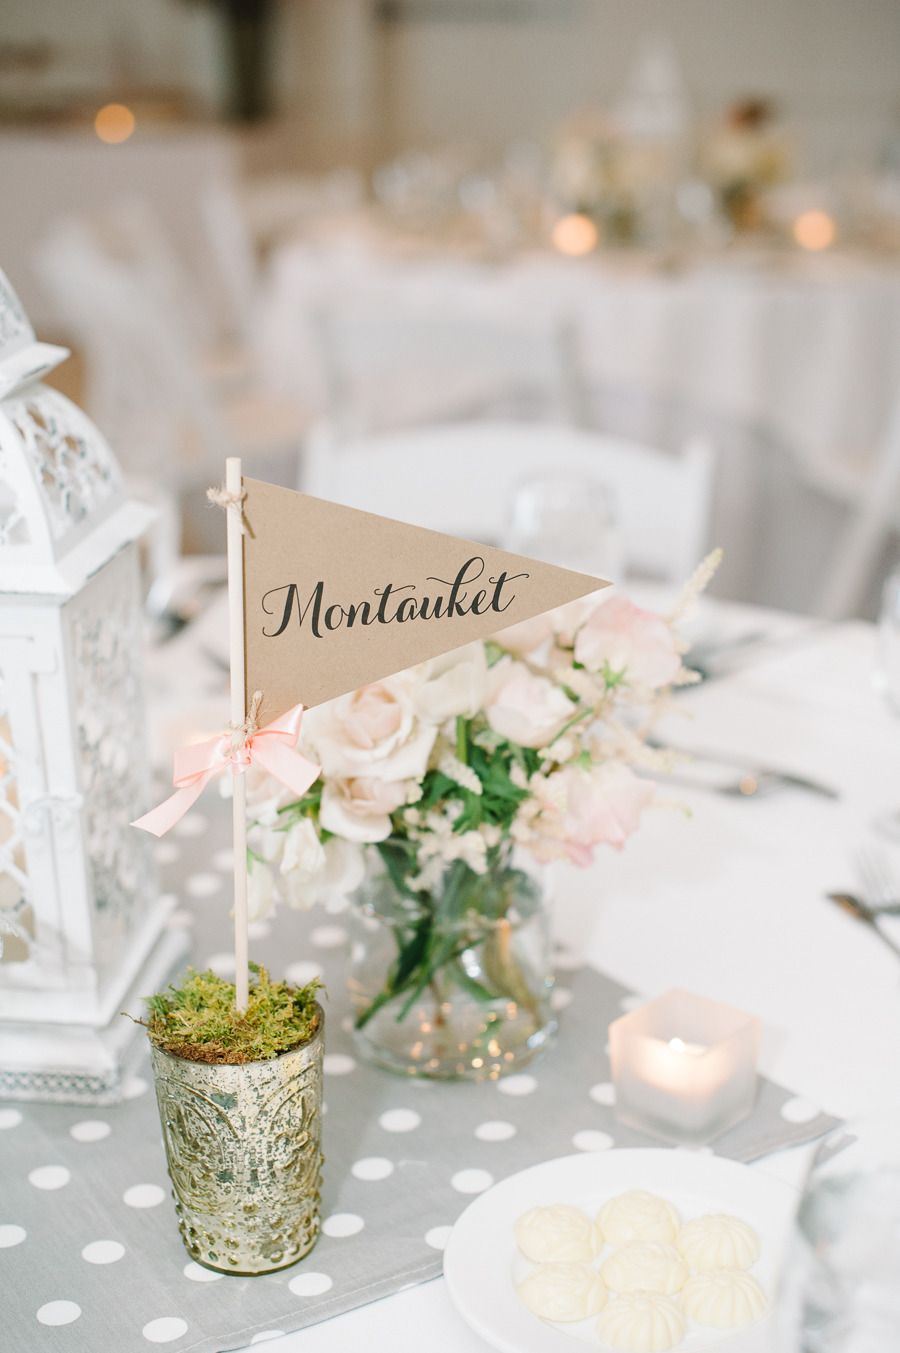 Montauk Yacht Club Wedding from Brklyn View Photography | Yacht club ...